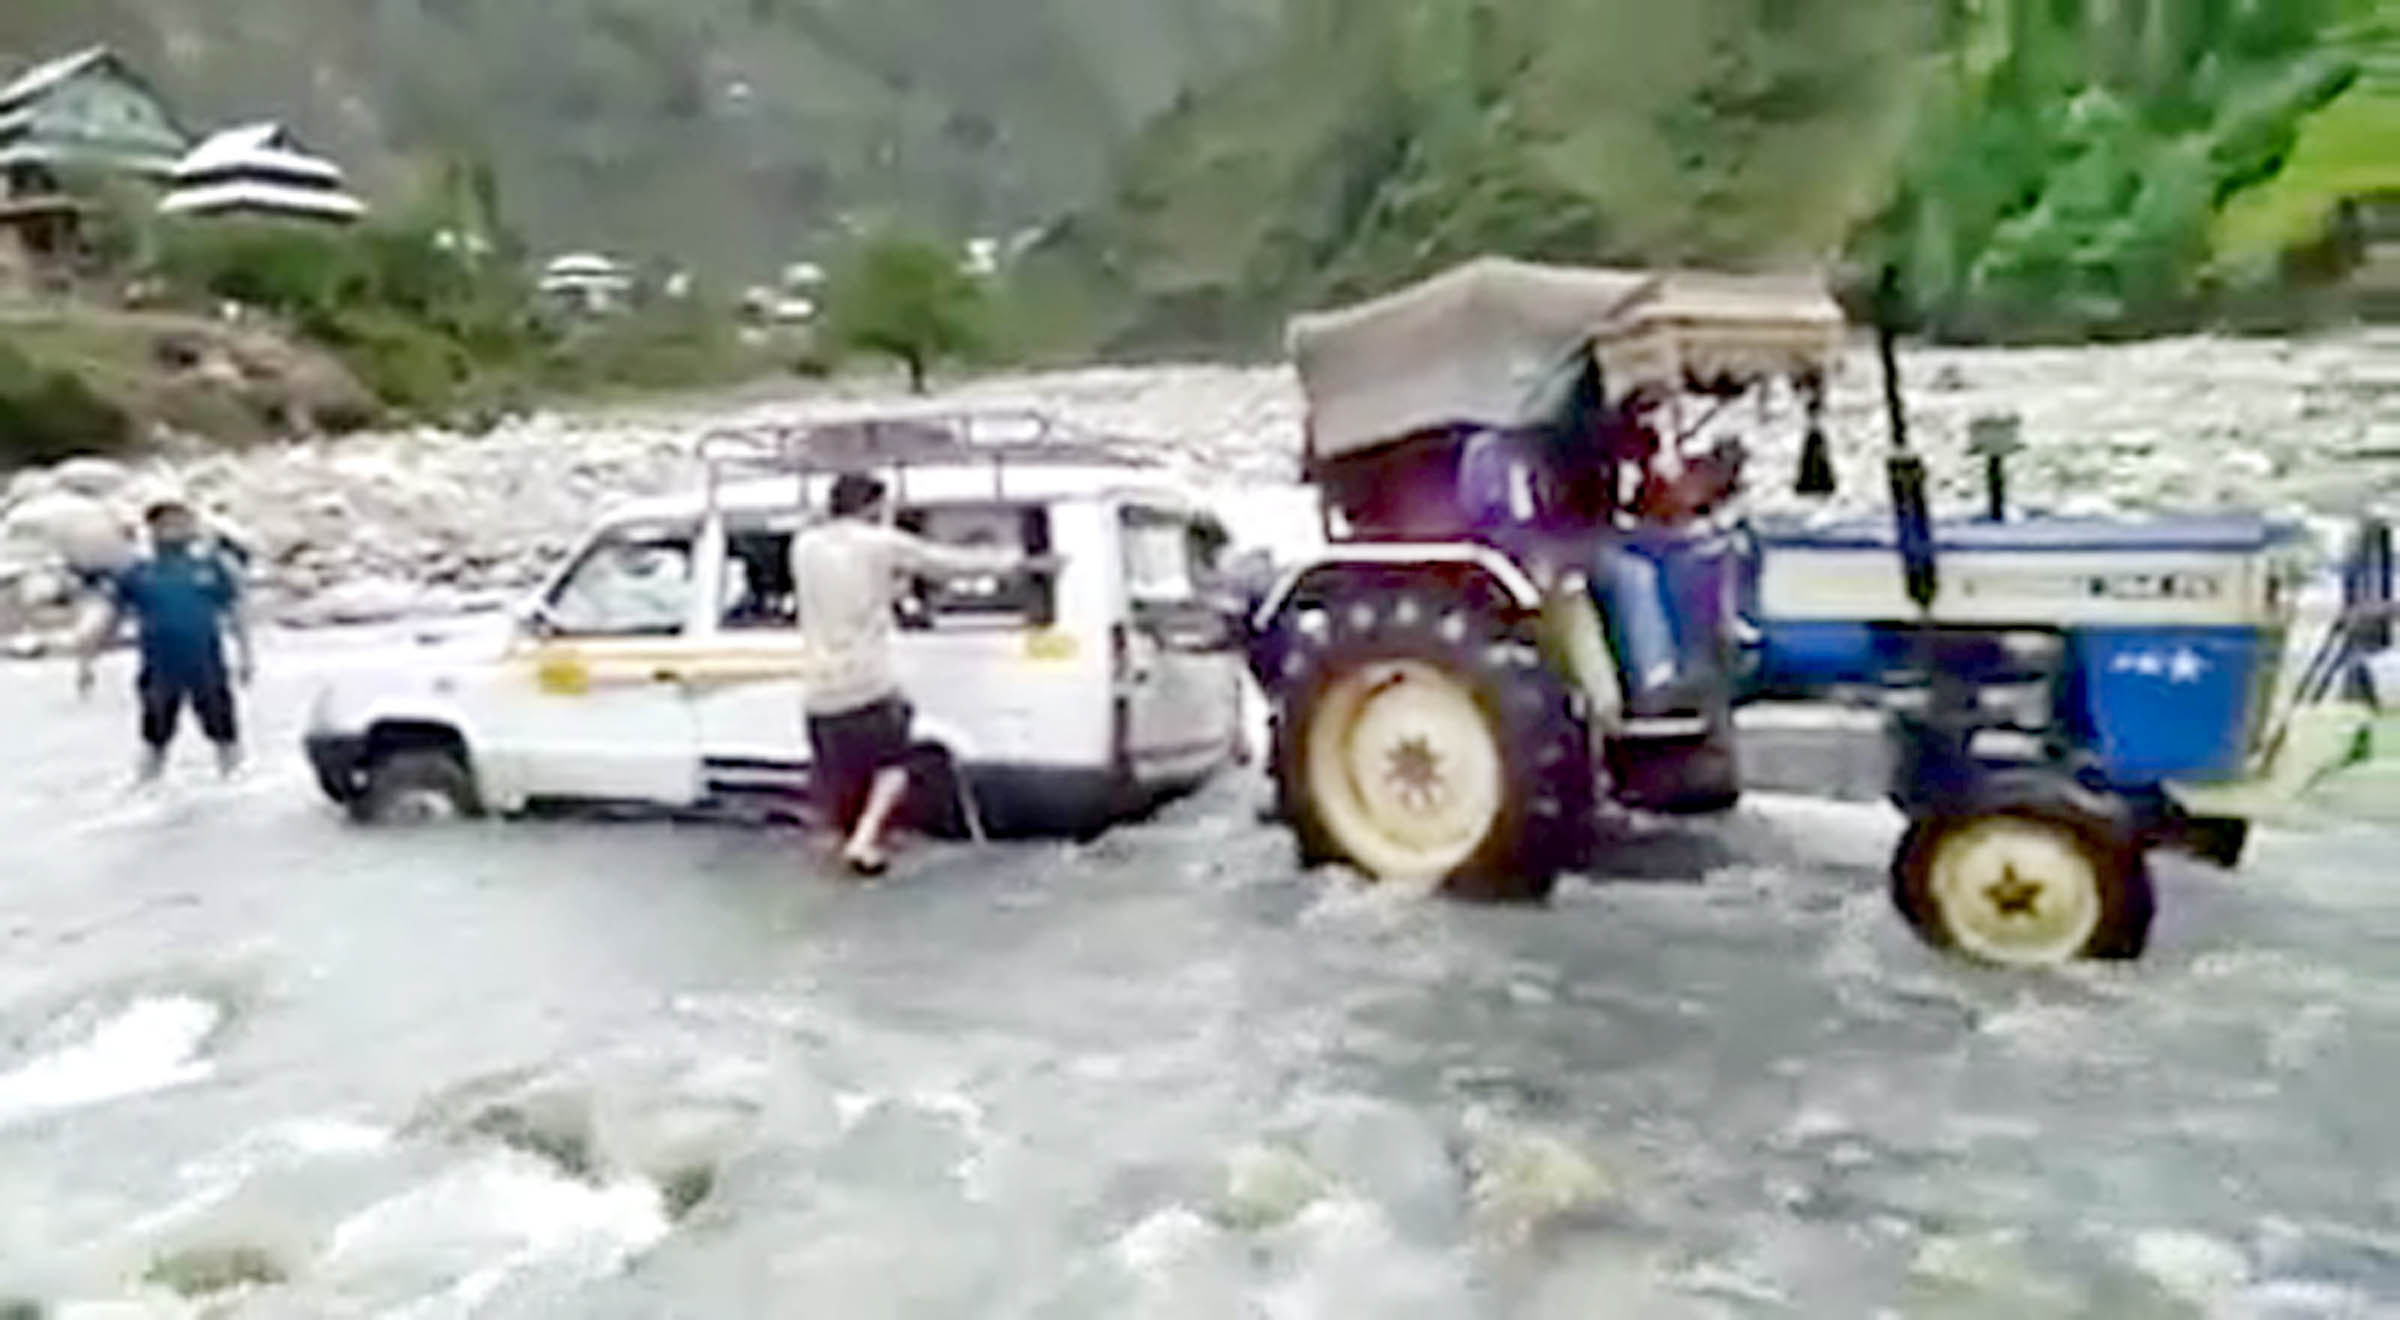 A tractor trying to pull out a Tata Sumo struck in Shadole nallah in Tehsil Mahore of Reasi district.